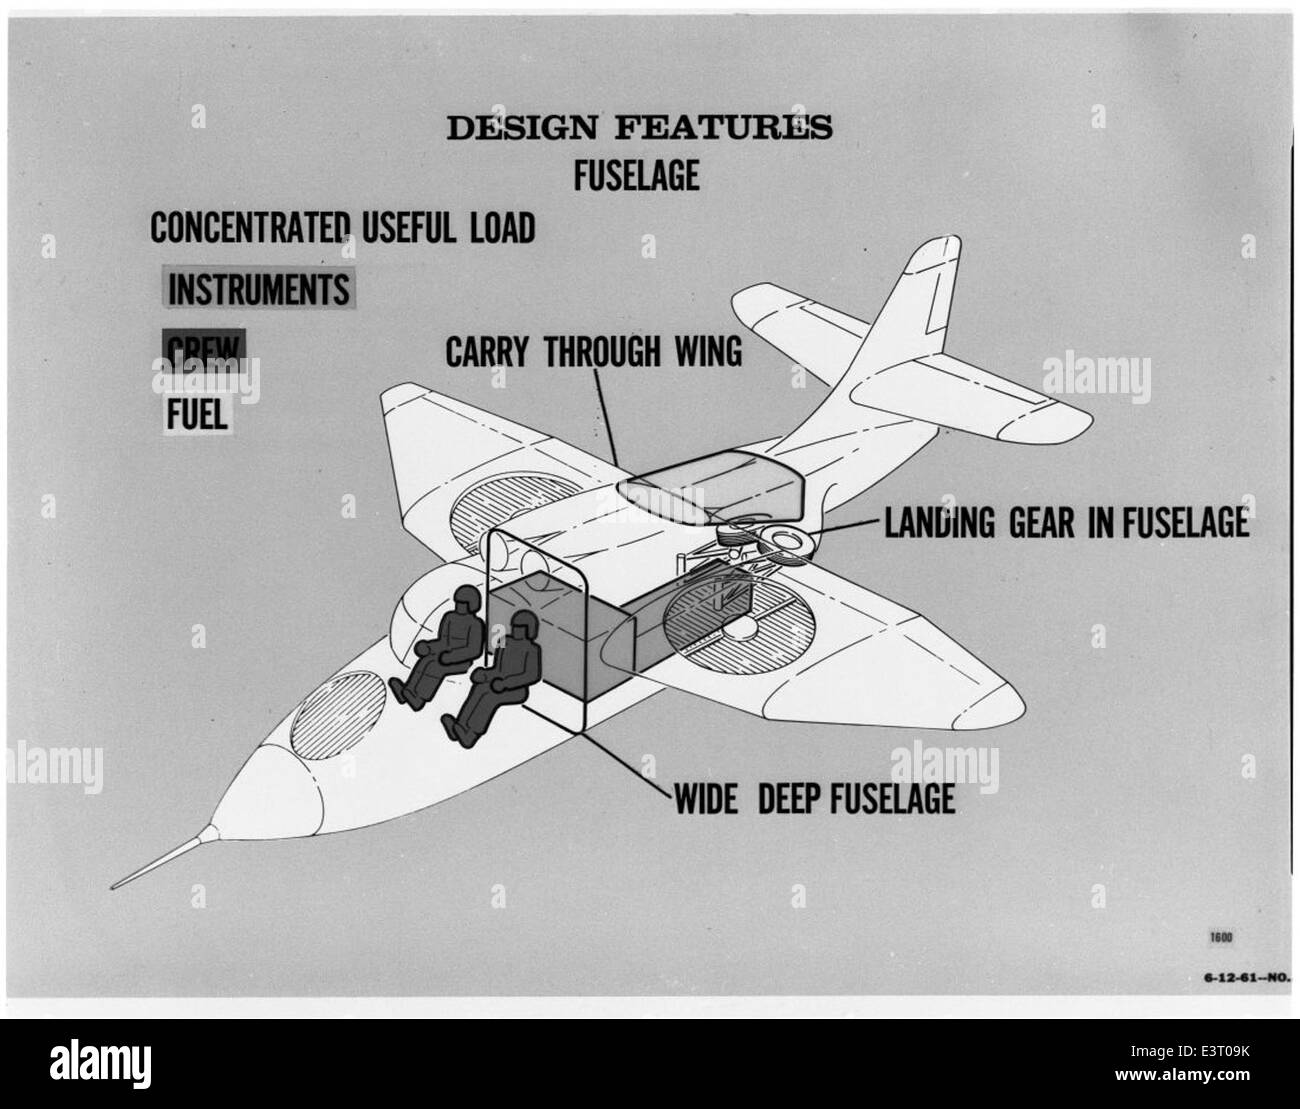 drone aircraft with Stock Photo 1600 Ryan Xv 5 Vertifan Cut Away 71212559 on Drone squadrons of the united states air force likewise Stock Photo 1600 Ryan Xv 5 Vertifan Cut Away 71212559 together with FS 075 DFRC as well Tmotor Uav Brushless Motor Mt2208 1100kv in addition Bae Replica.